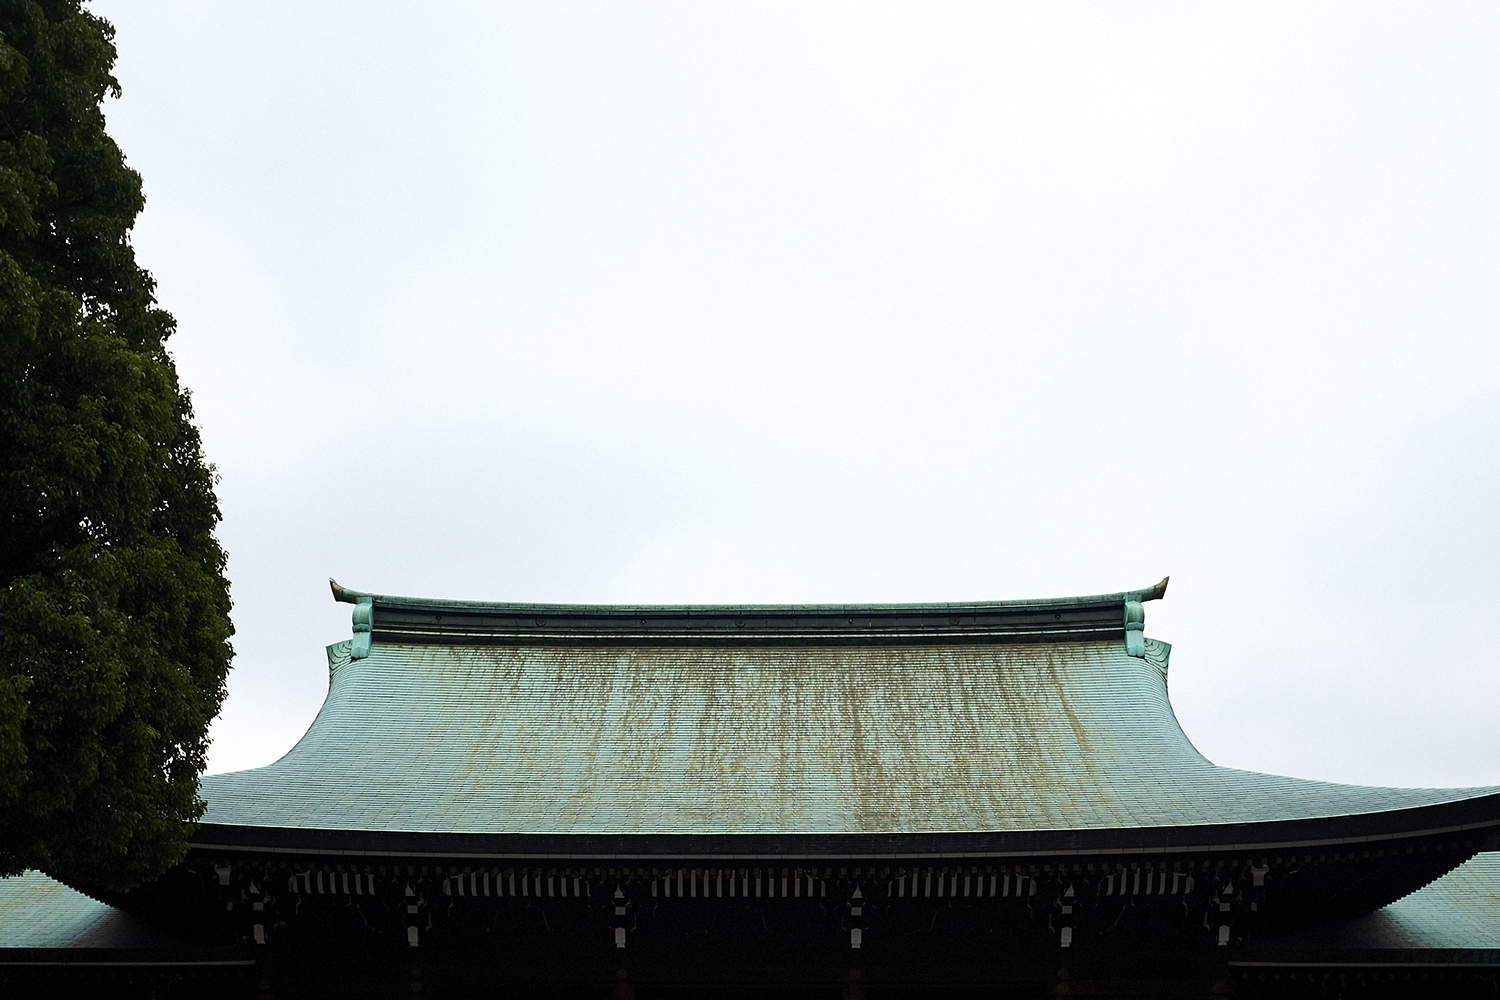 kyle_ellis_photography_japan_web_0028.jpg